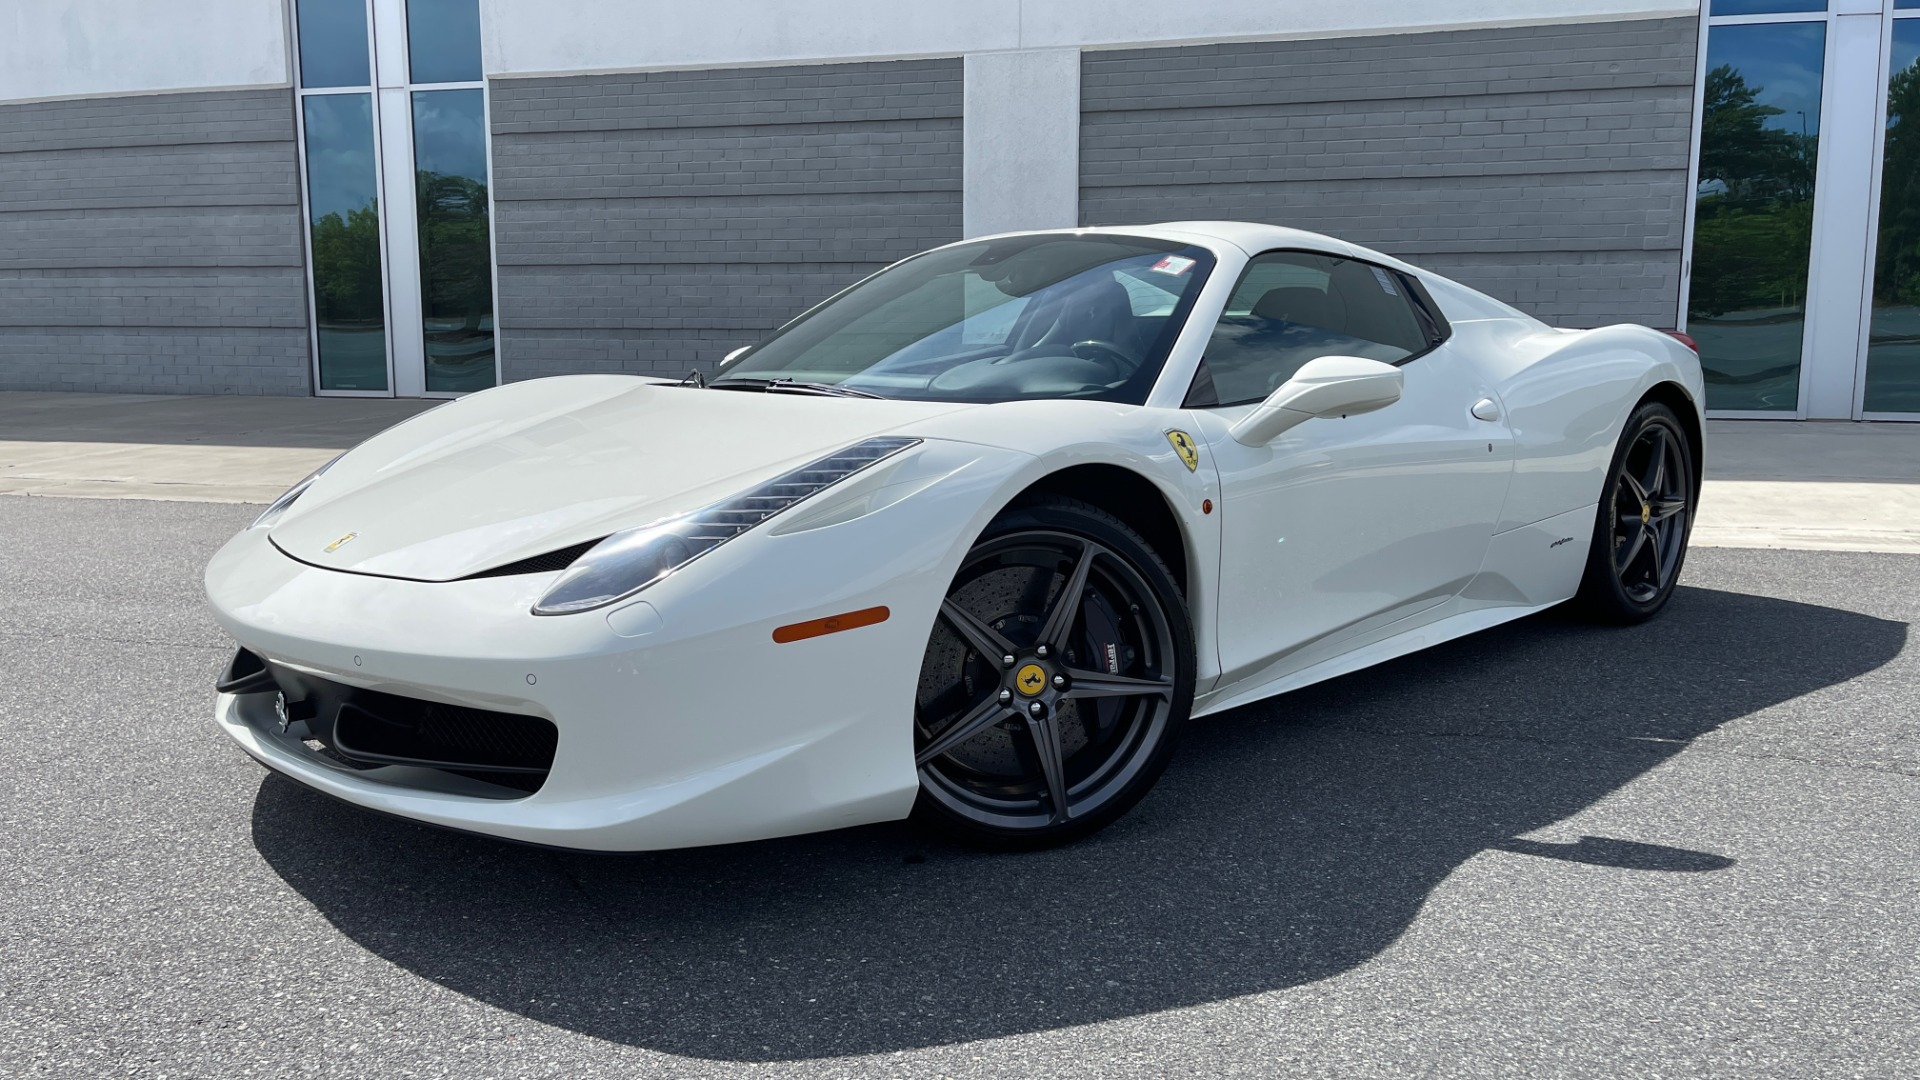 Used 2014 Ferrari 458 ITALIA SPIDER 570HP / F1 AUTO / CF SEATS / CARBON BRAKES / REARVIEW for sale $249,999 at Formula Imports in Charlotte NC 28227 1